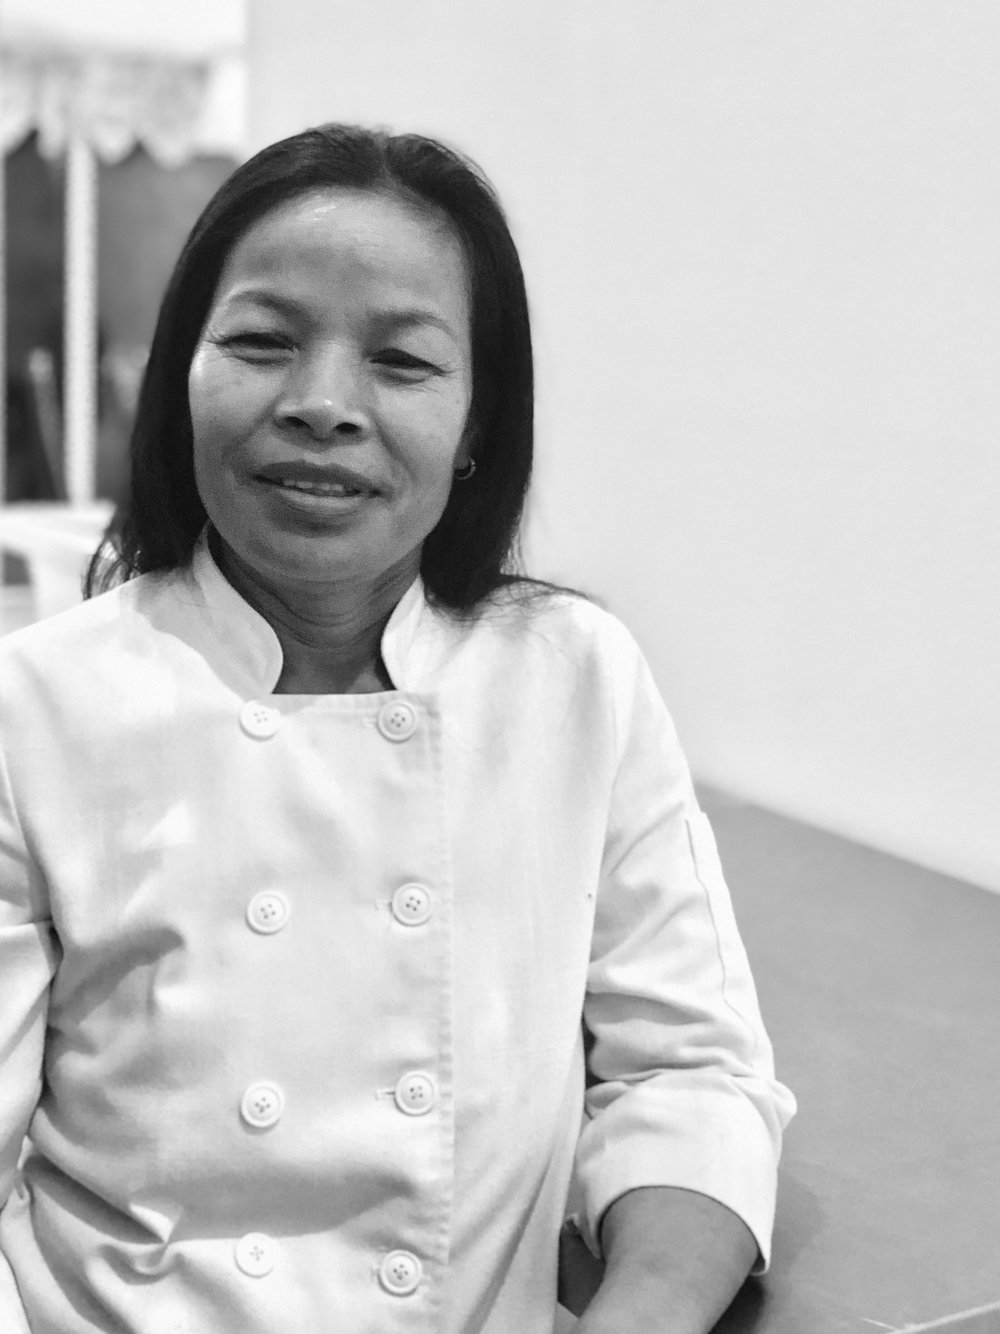 Born in Buri Ram Province of Thailand, Lek has been mastering her culinary skills for over 35 years.